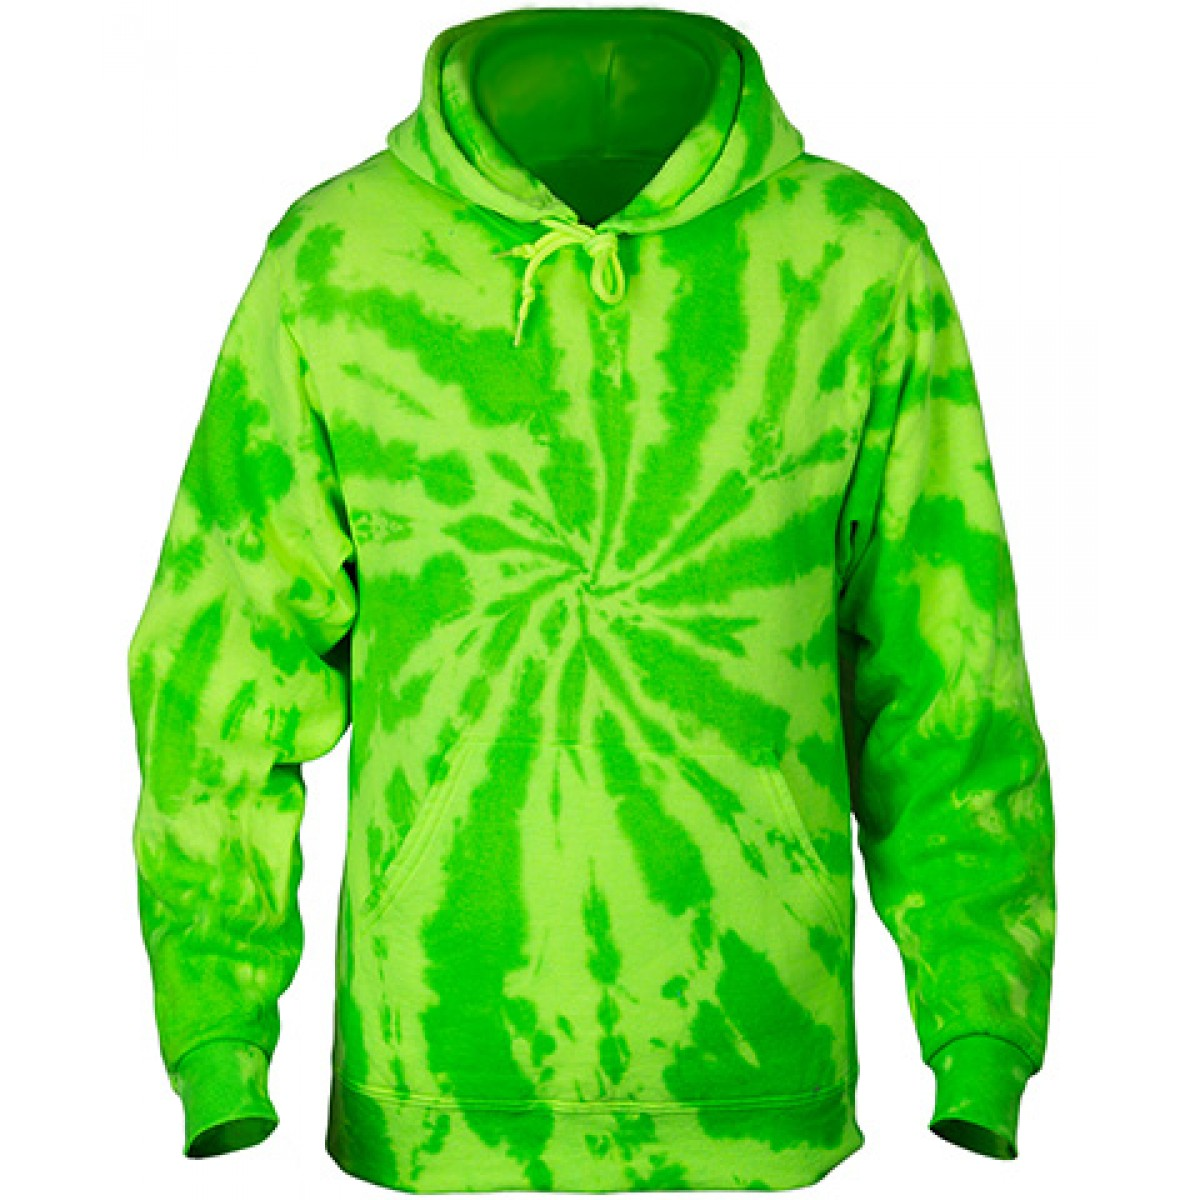 Tie-Dye Pullover Hooded Sweatshirt-Neon Green-M